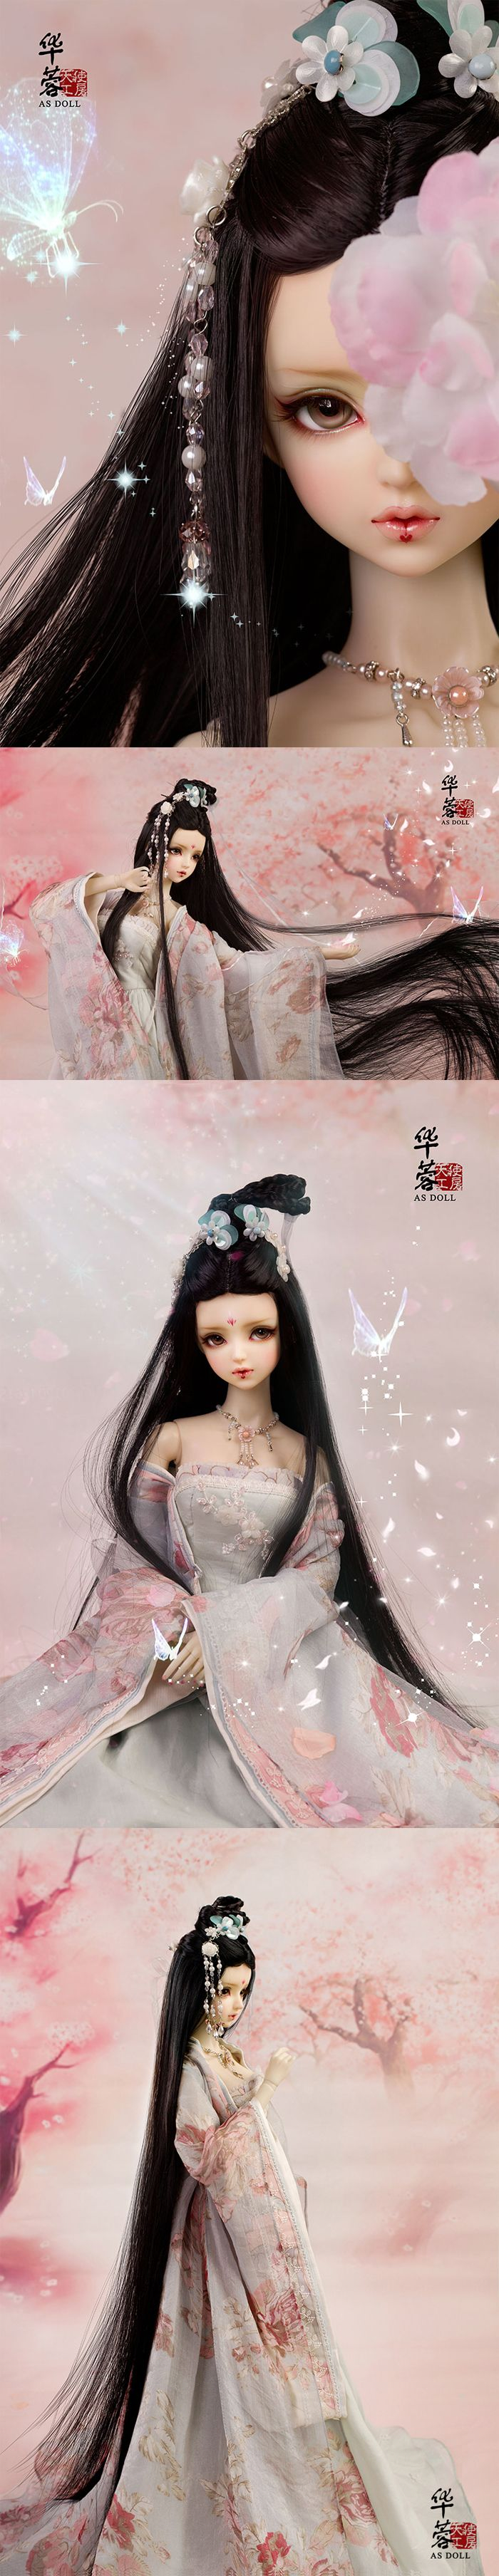 (AS Agency)BJD Limited Edition Hua Rong/Black Girl 62cm Ball-Jointed Doll_SD size doll_Angell Studio_DOLL_Ball Jointed Dolls (BJD) company-Legenddoll